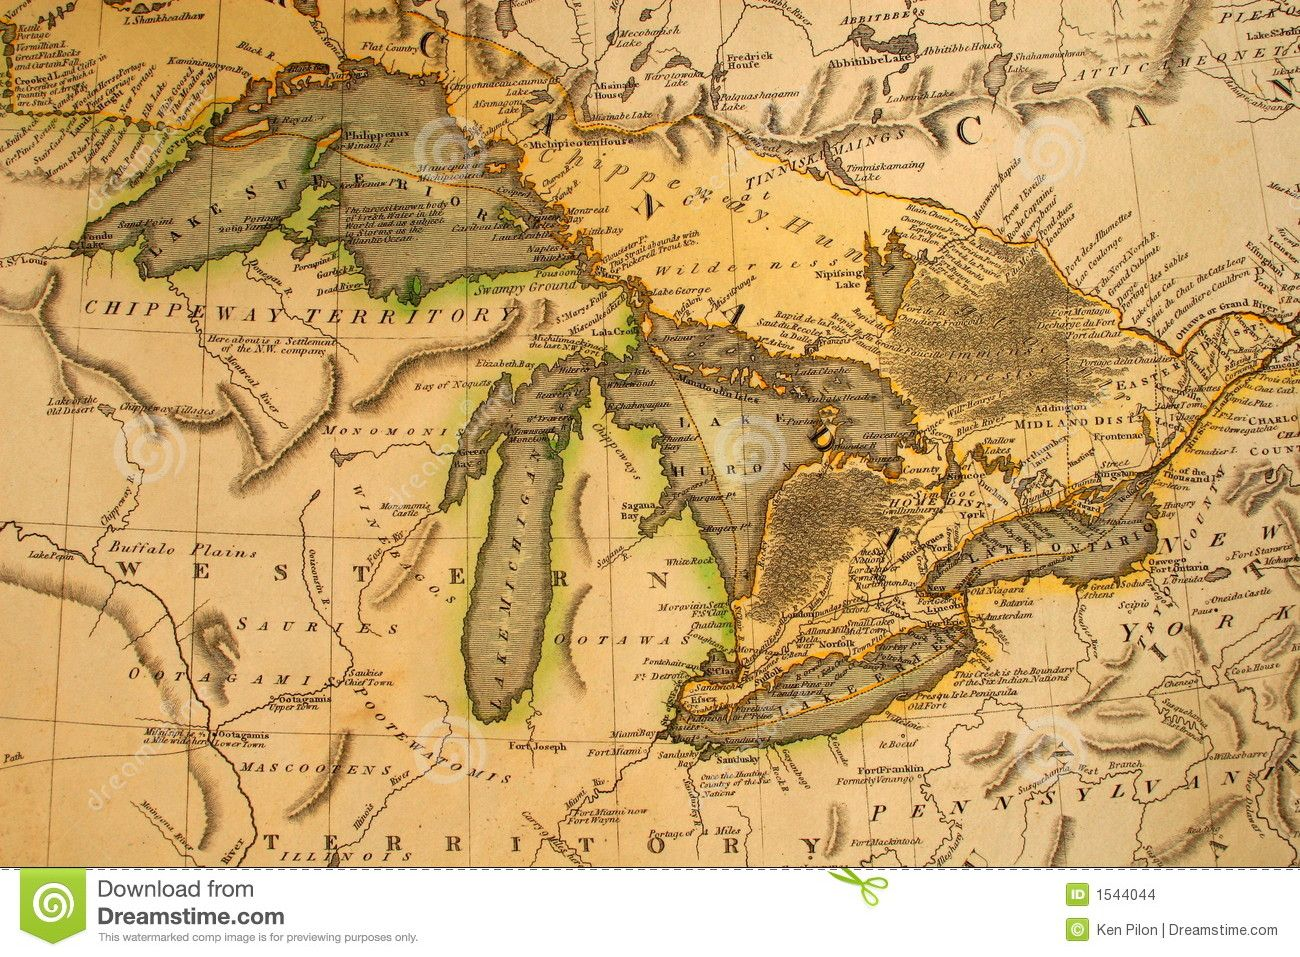 Awesome Vintage Michigan Maps Images Art Pinterest Lakes - Michigan lakes map